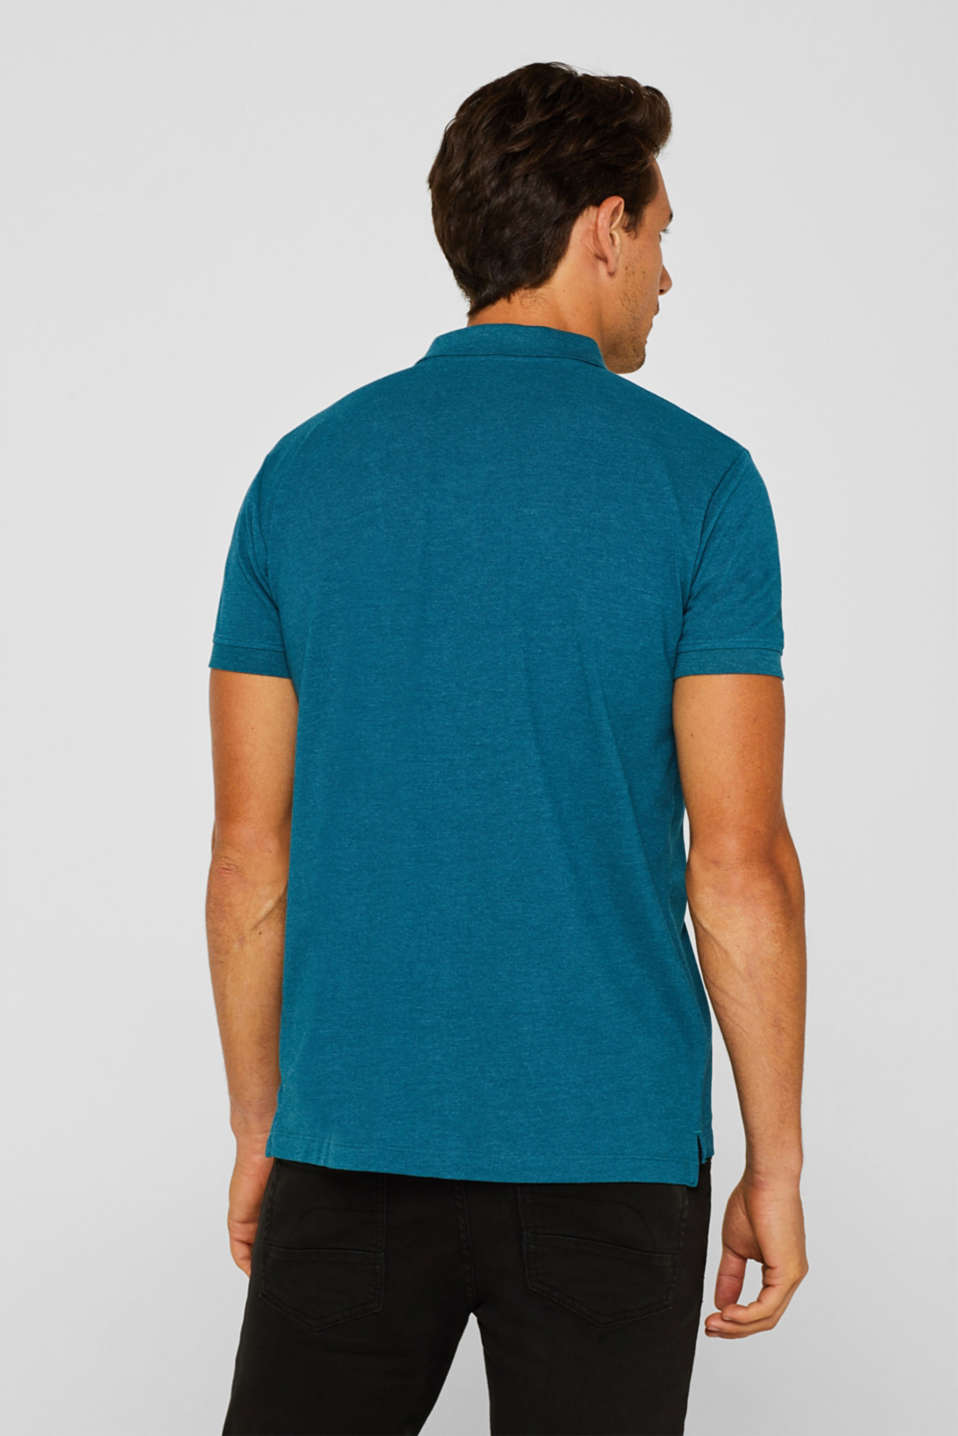 Piqué polo shirt in blended cotton, TEAL BLUE, detail image number 3